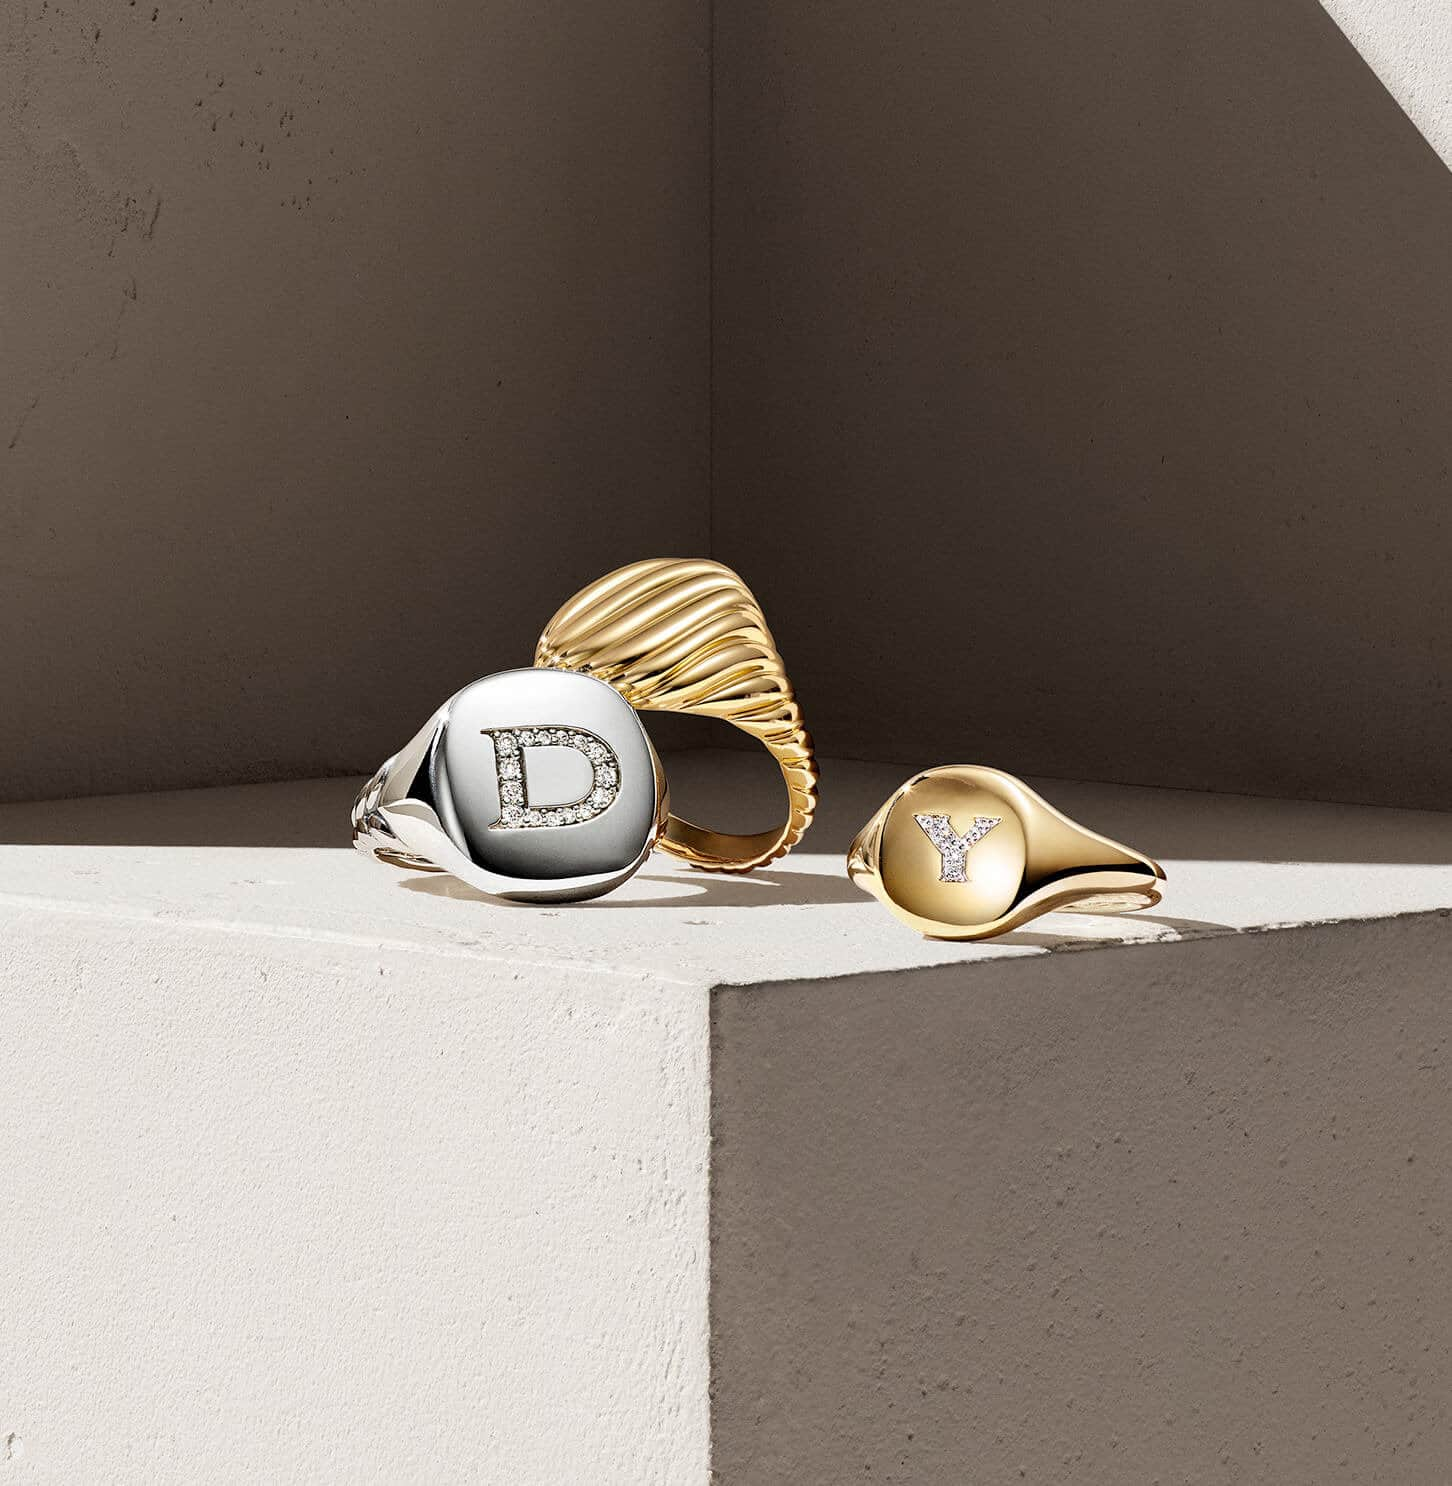 A color photograph shows three David Yurman Cable Collectibles pinky rings atop a beige surface. Each ring is crafted from sterling silver or 18K yellow gold with or without diamonds.